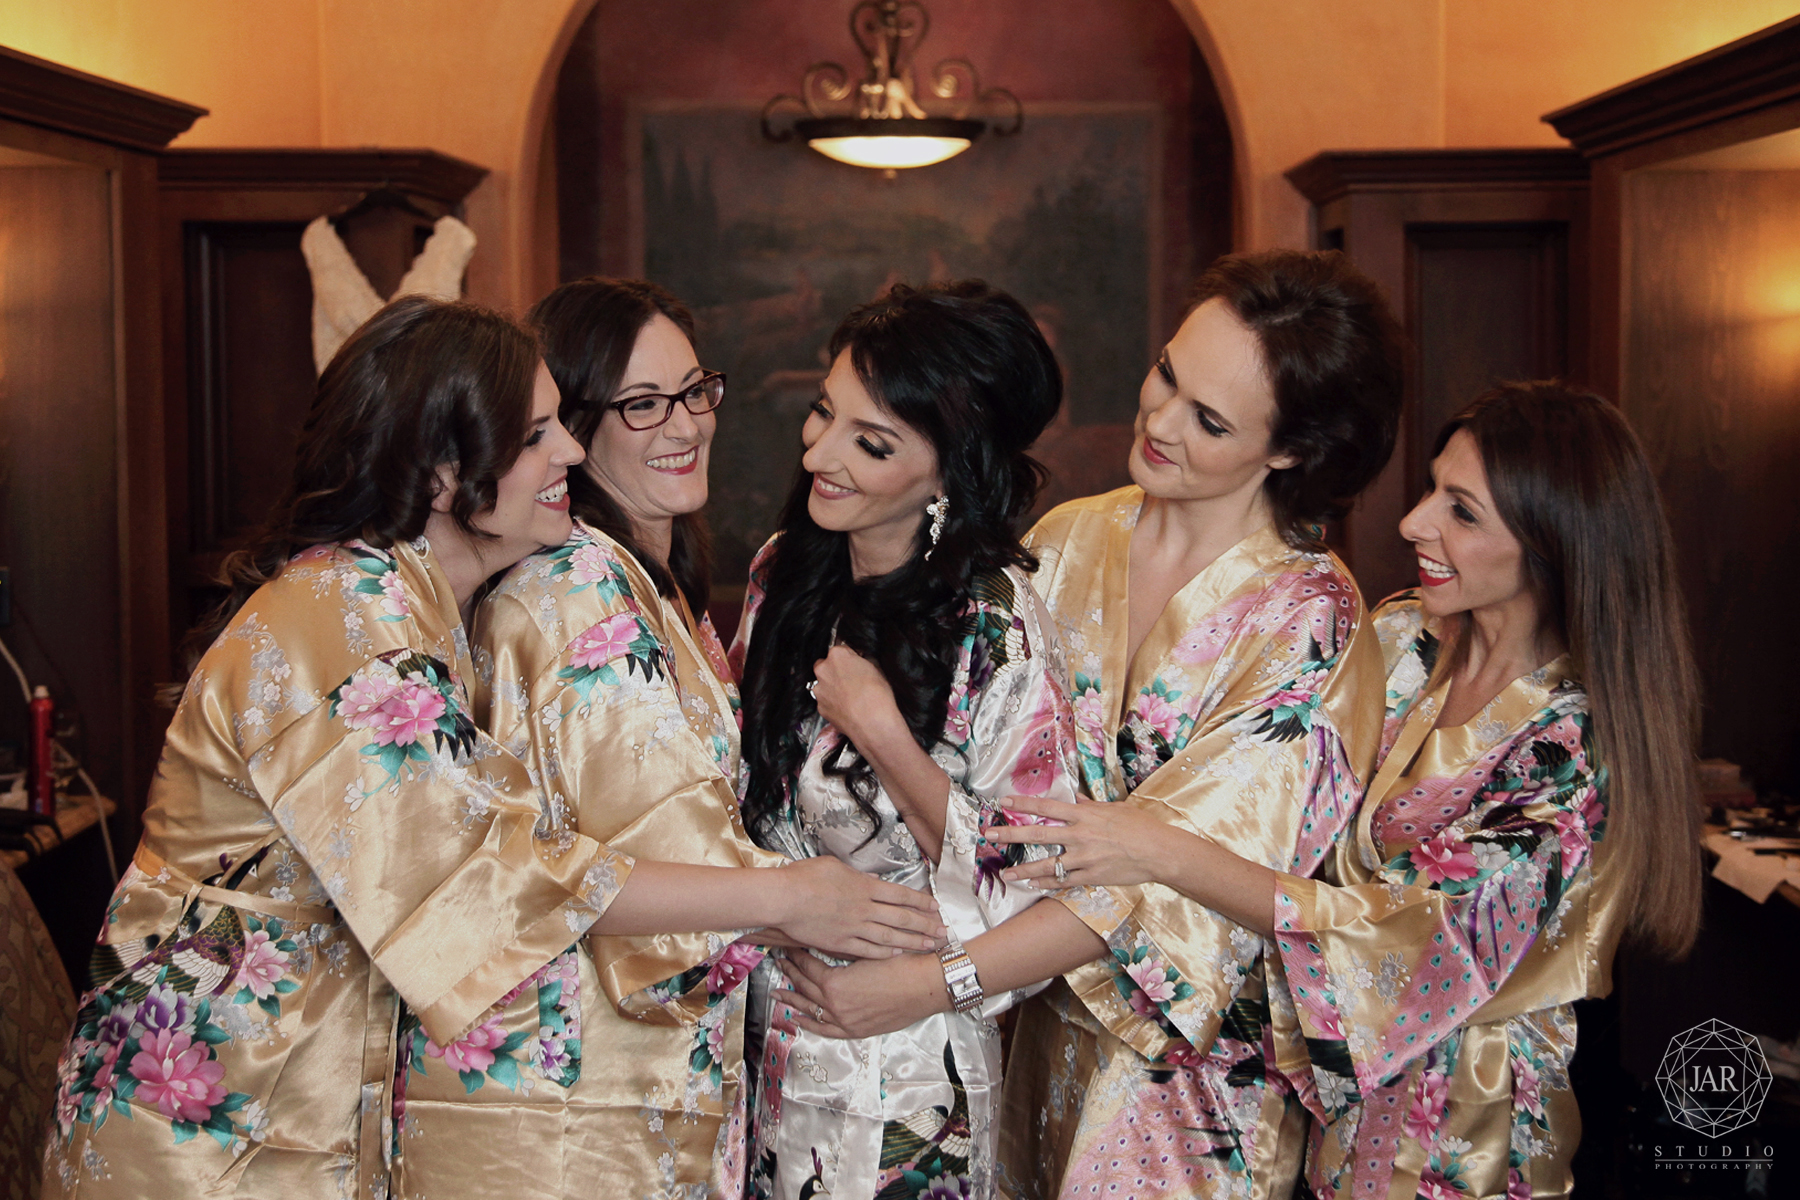 08-wedding-floral-robes-bridesmaids-highend-bella-collina-jarstudio-photography.jpg